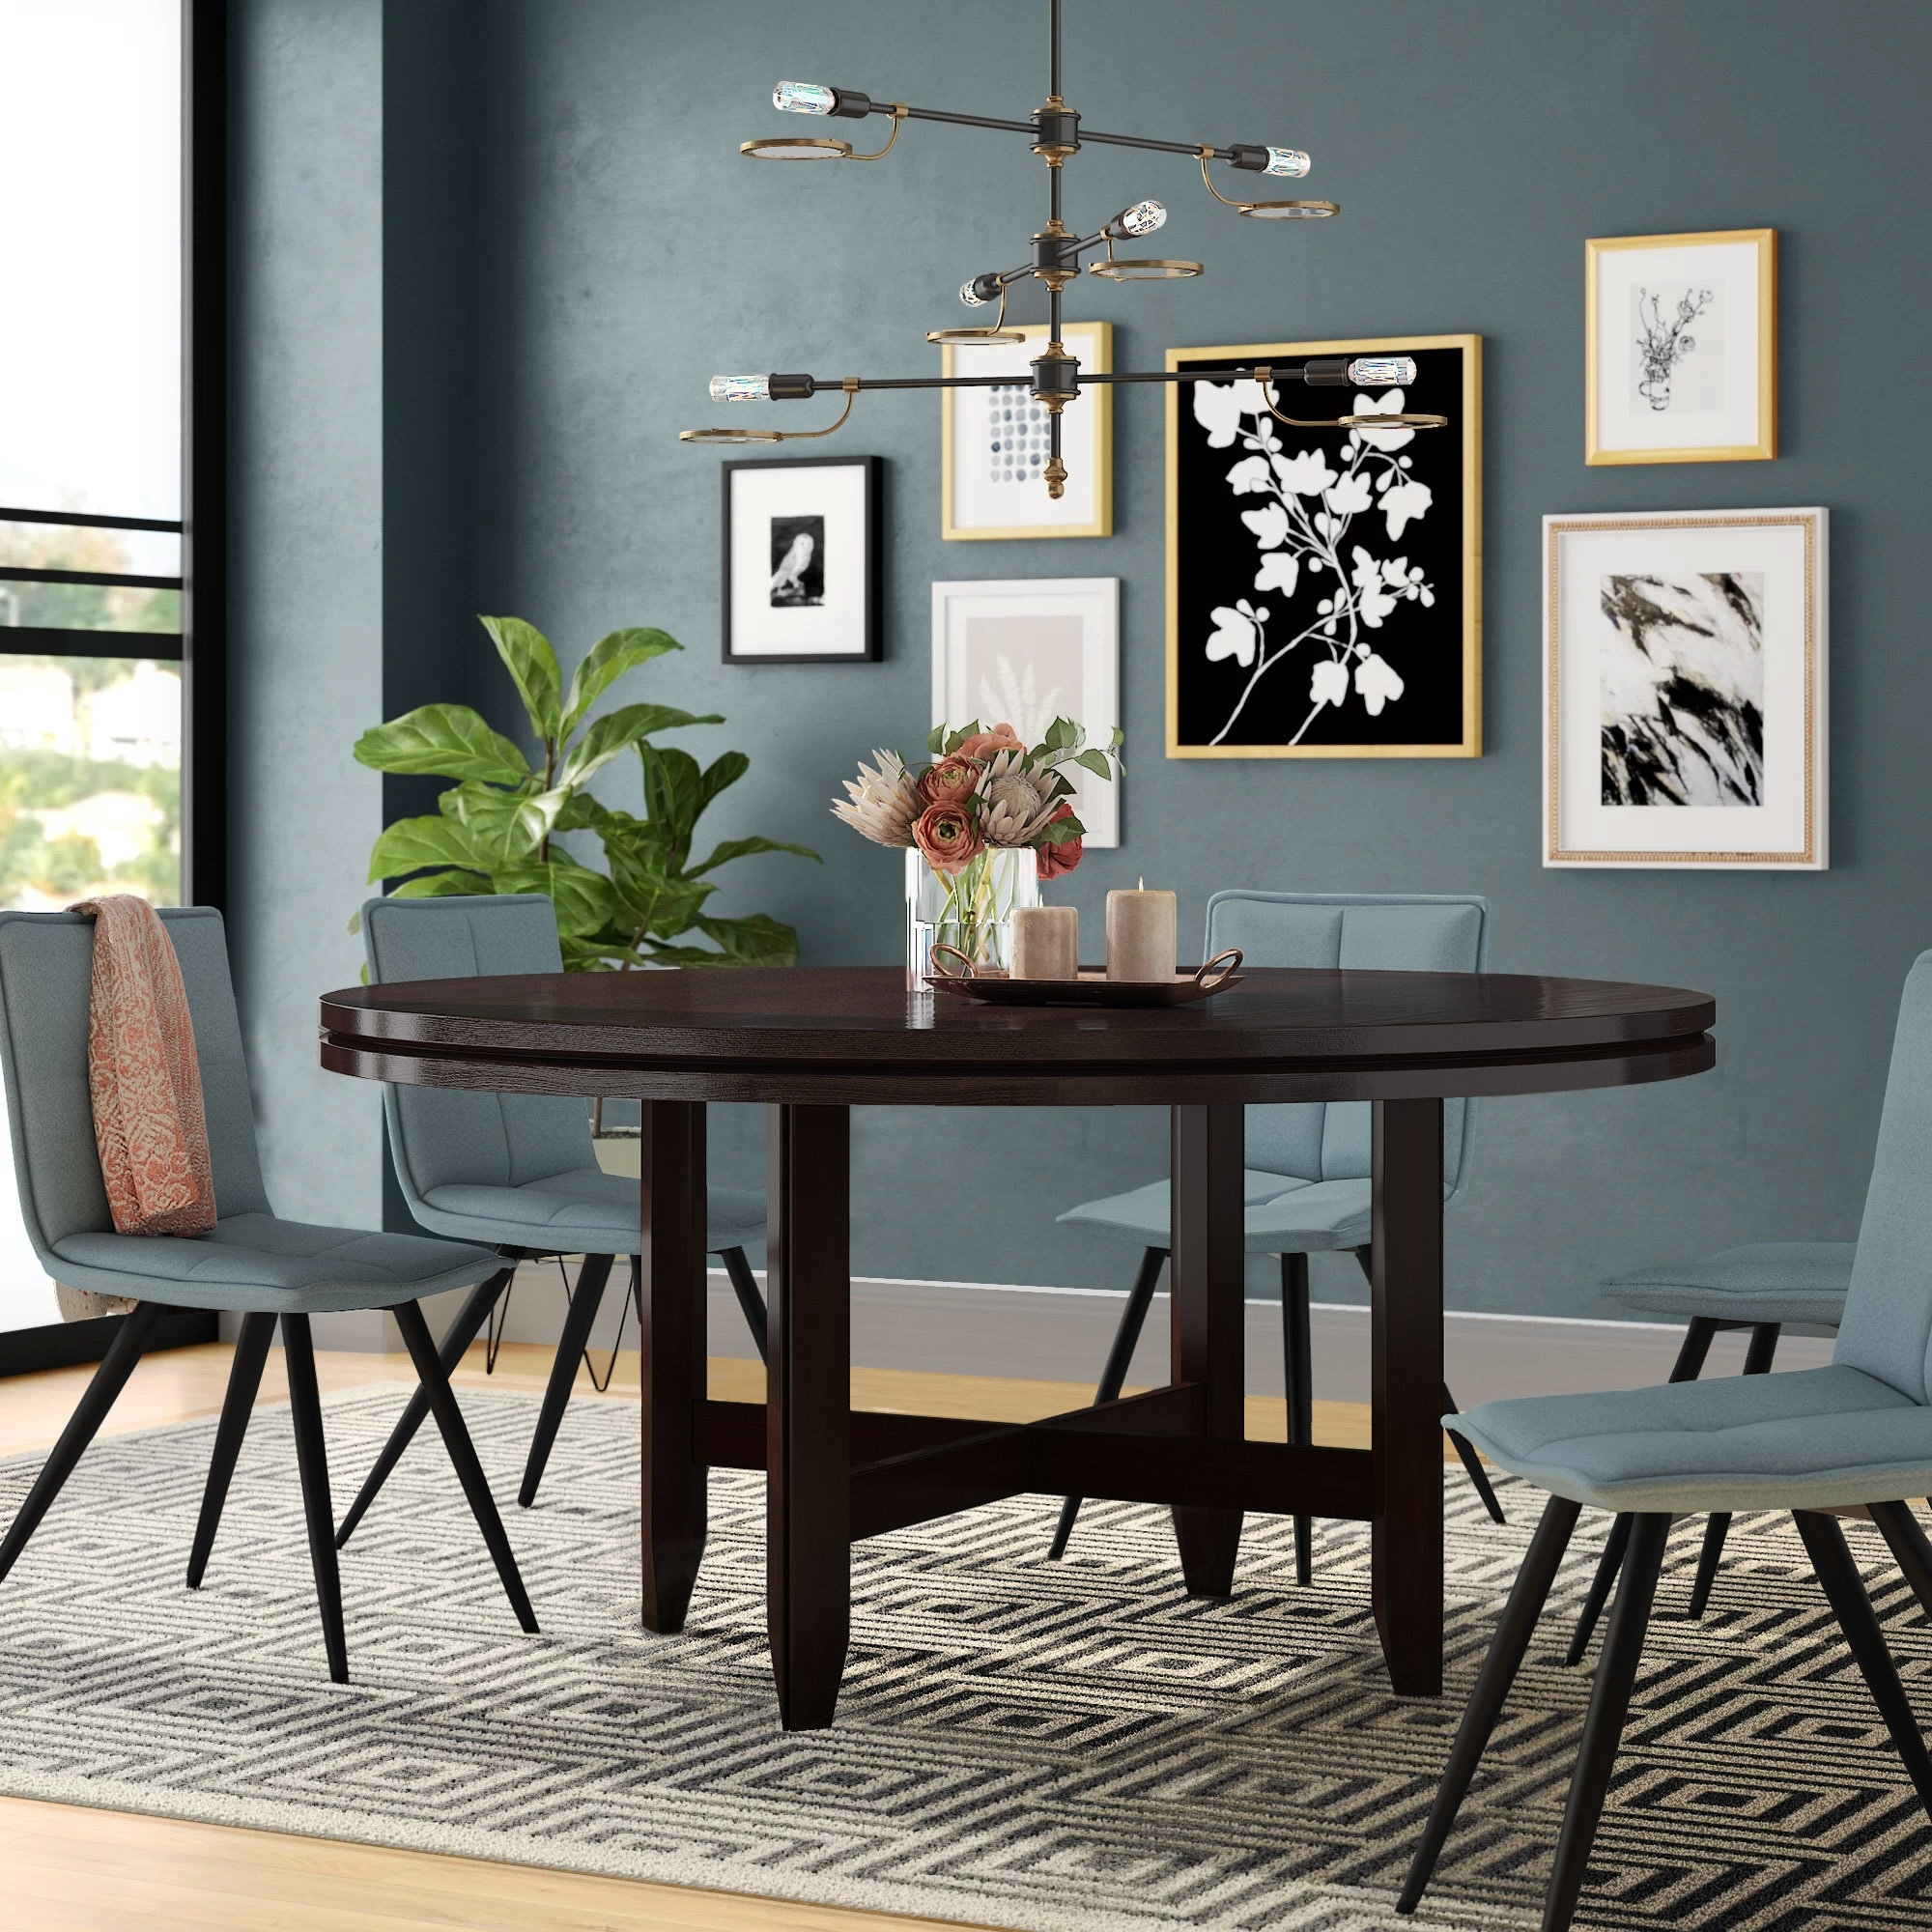 Contemporary Dining Furniture With Regard To Best And Newest Winston Porter Fenley Contemporary Dining Table & Reviews (View 10 of 25)